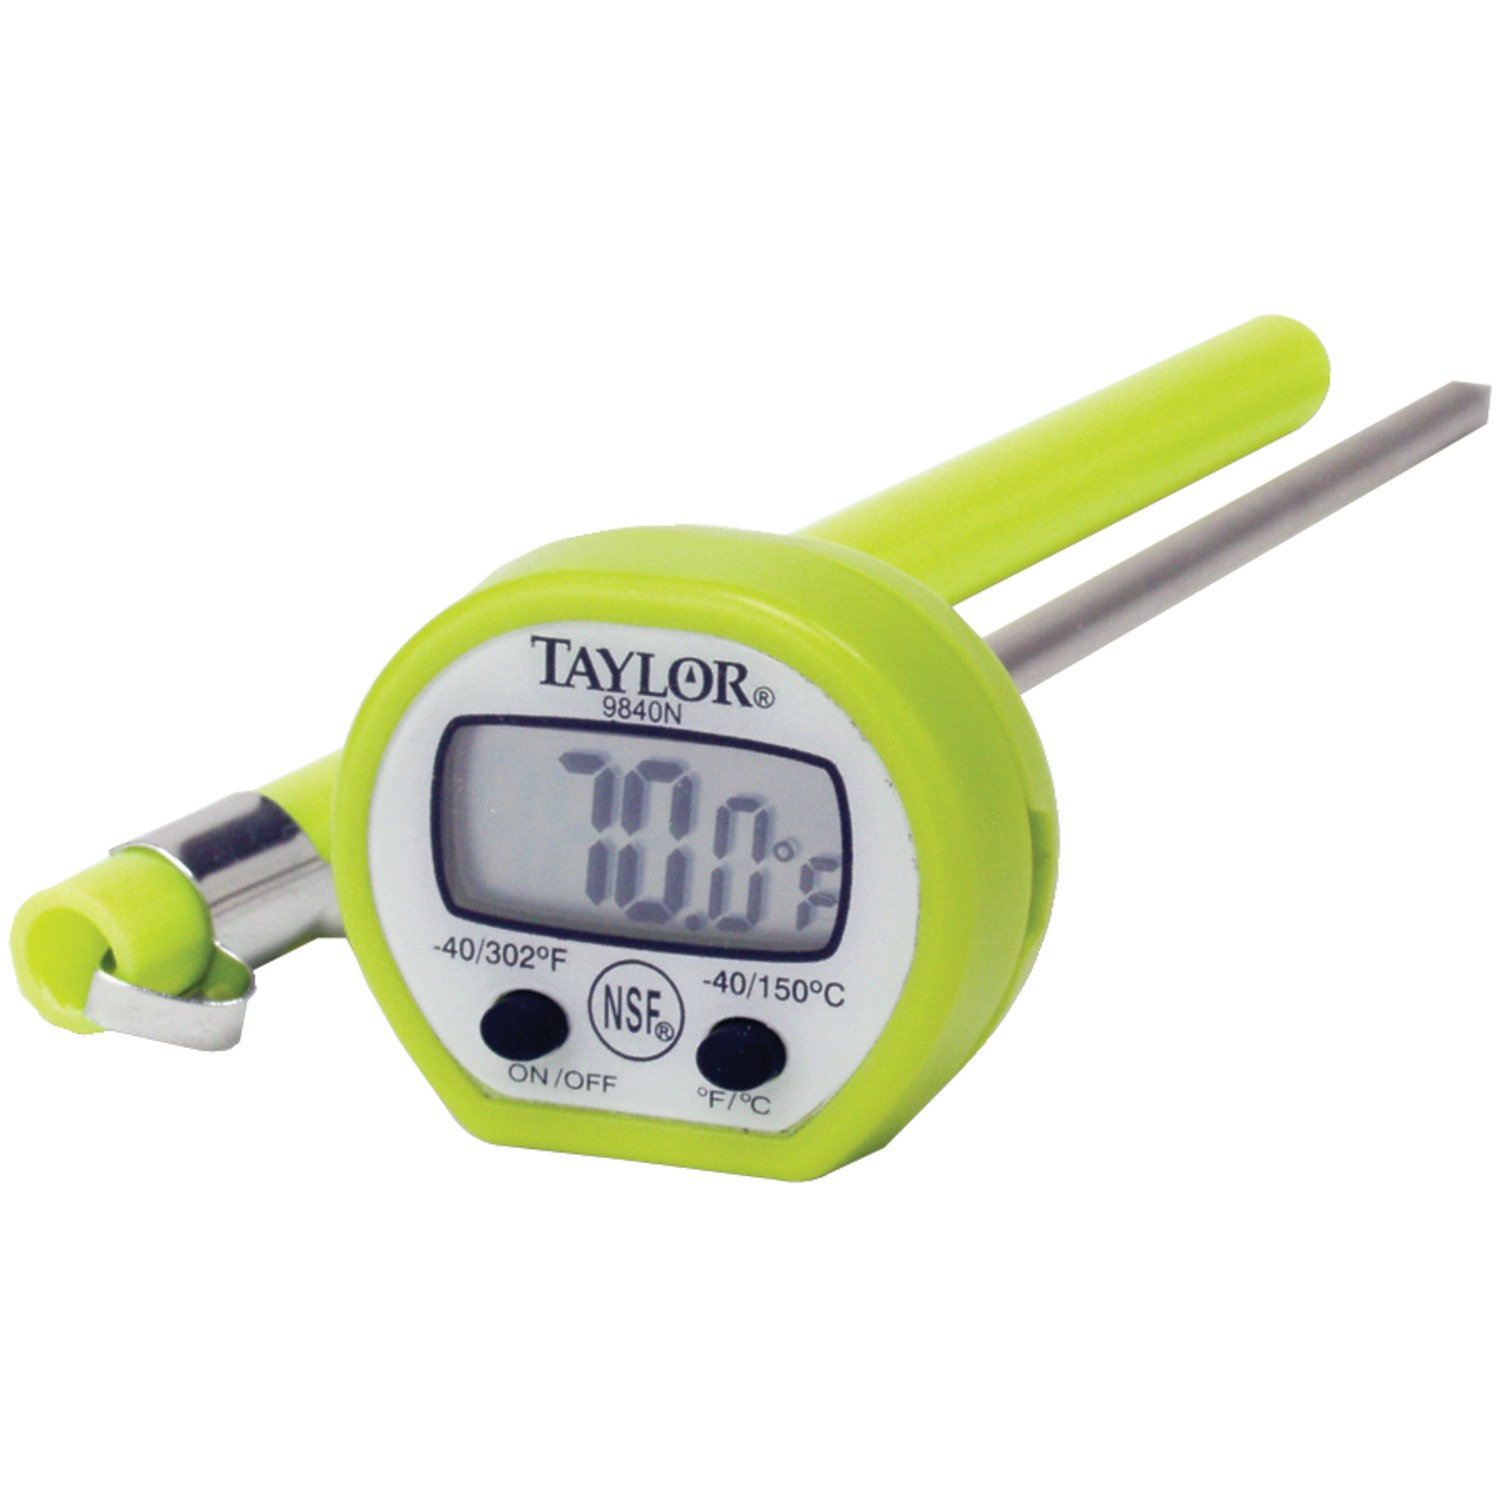 Taylor Classic Instant Read Pocket Thermometer (Set of 6)